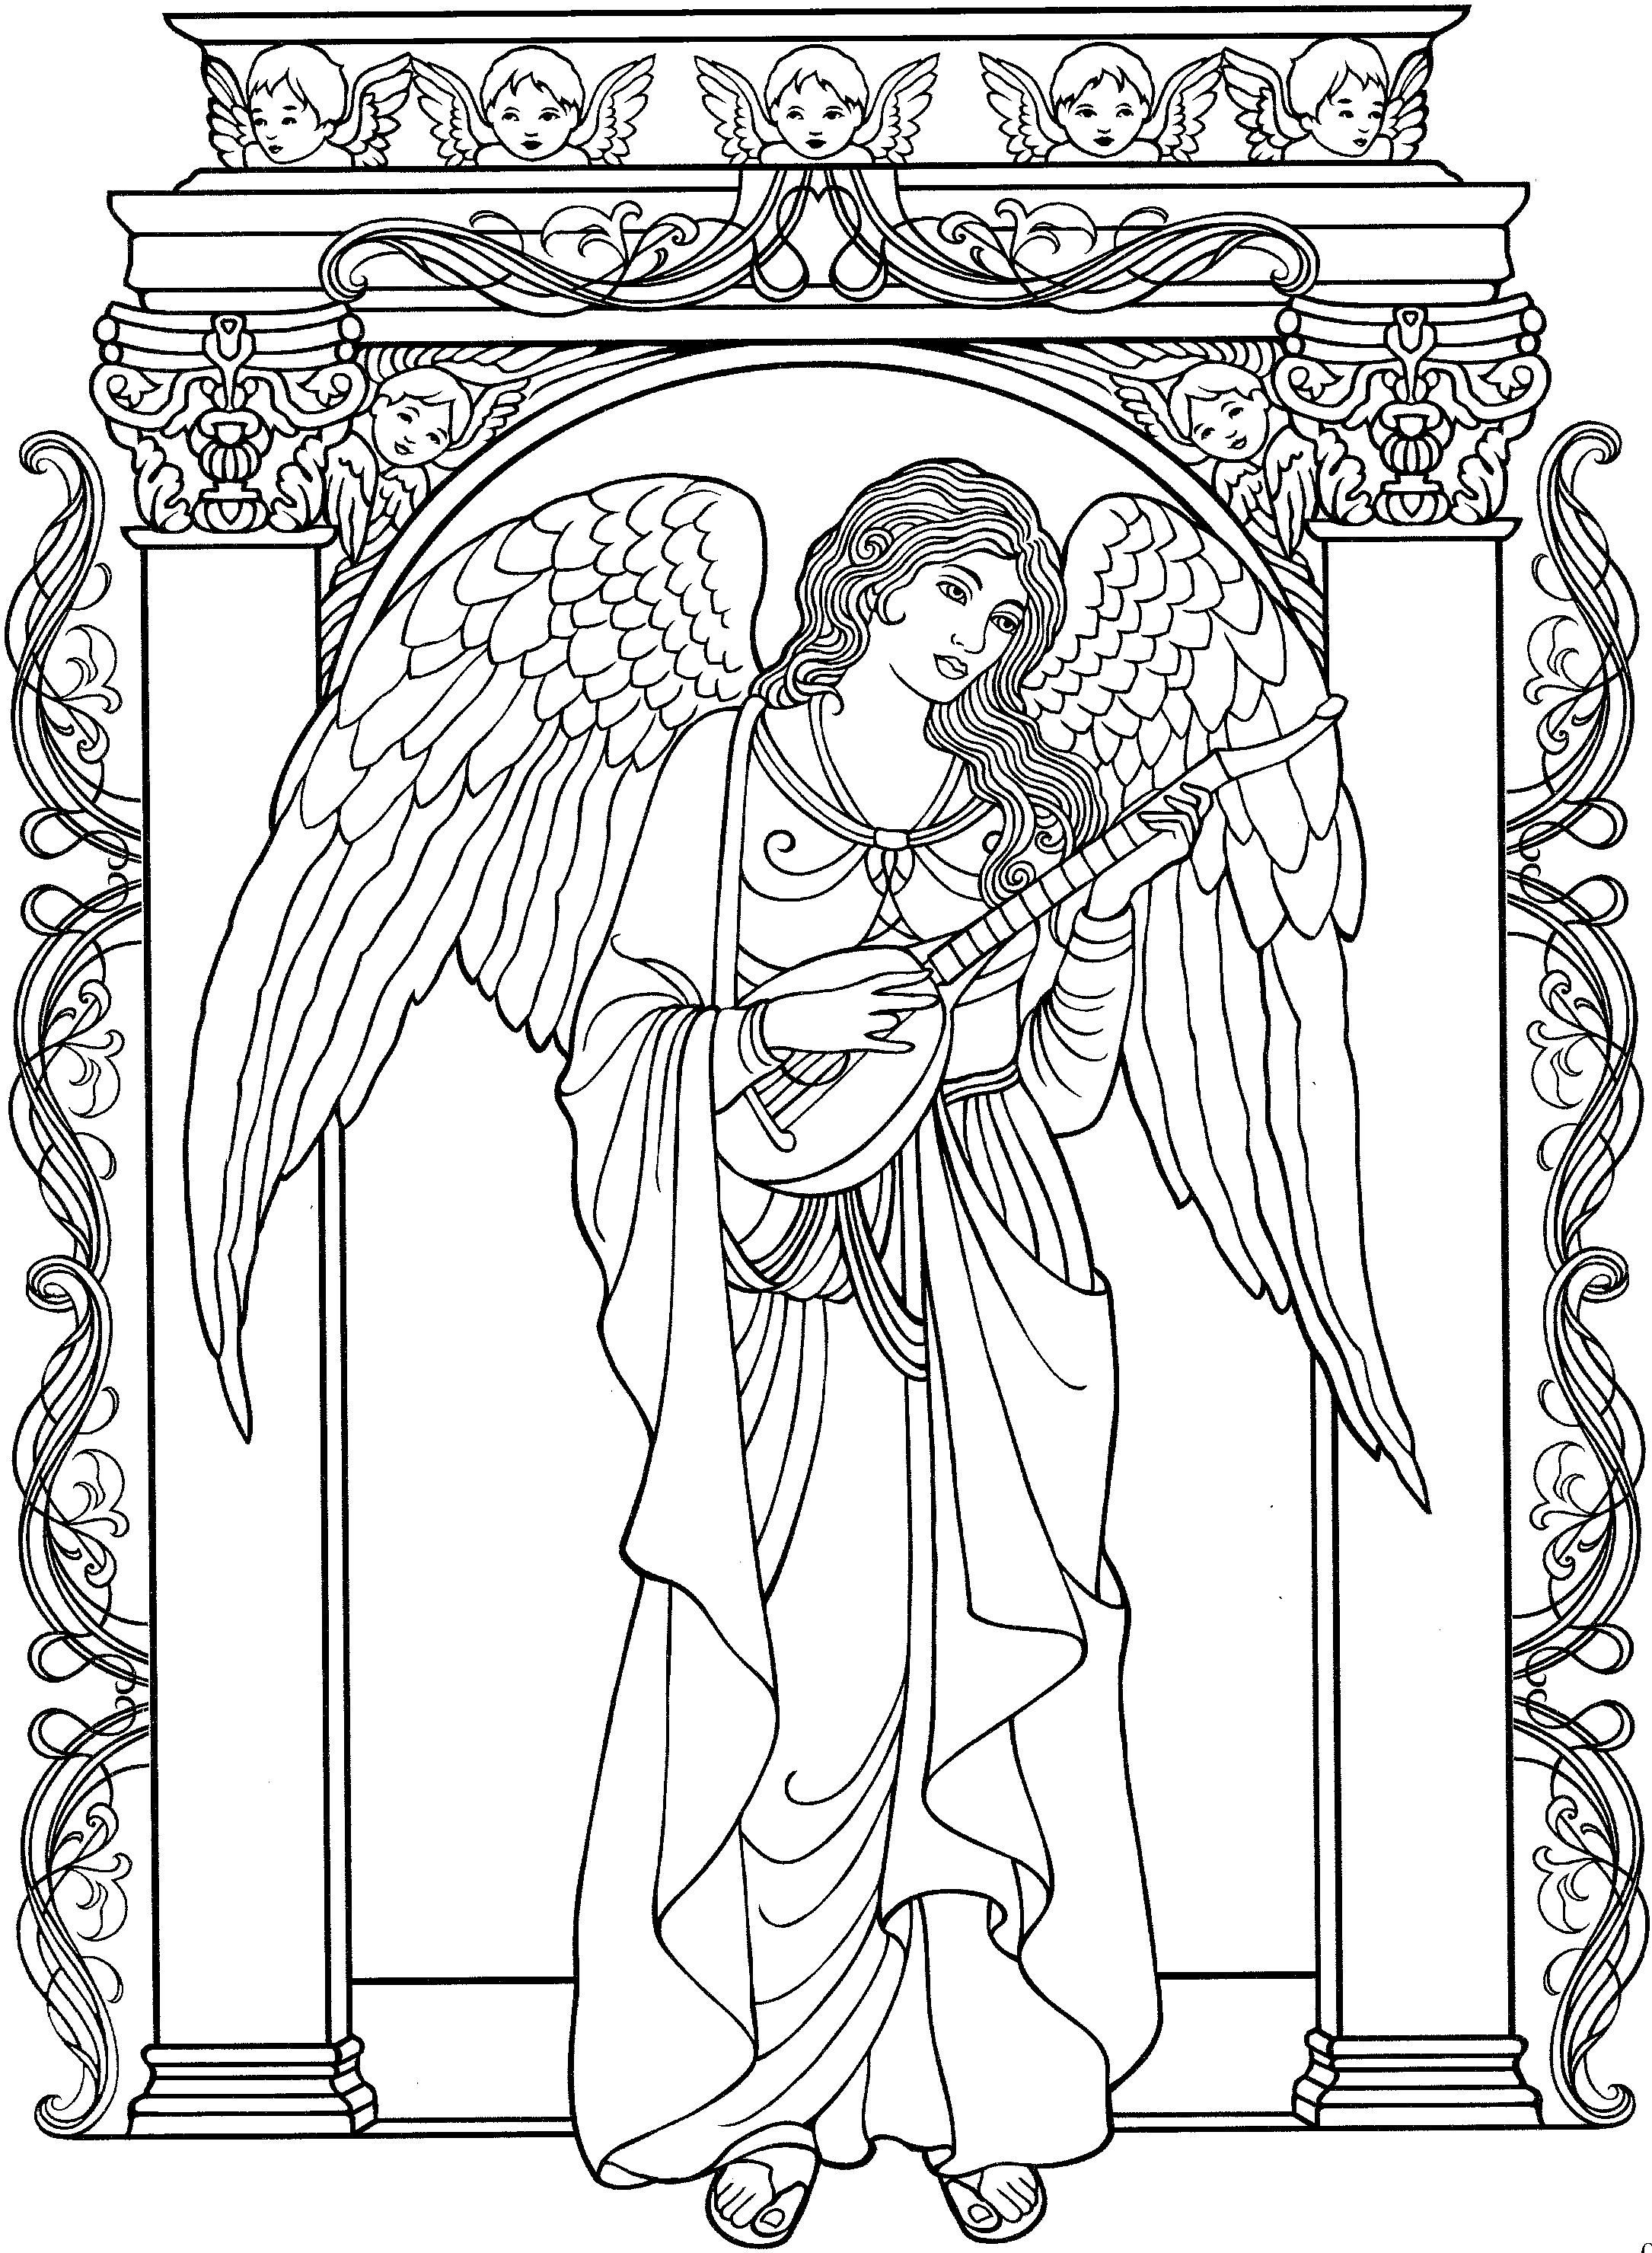 angel coloring pages for adults angel coloring pages for adults coloring home angel pages adults for coloring